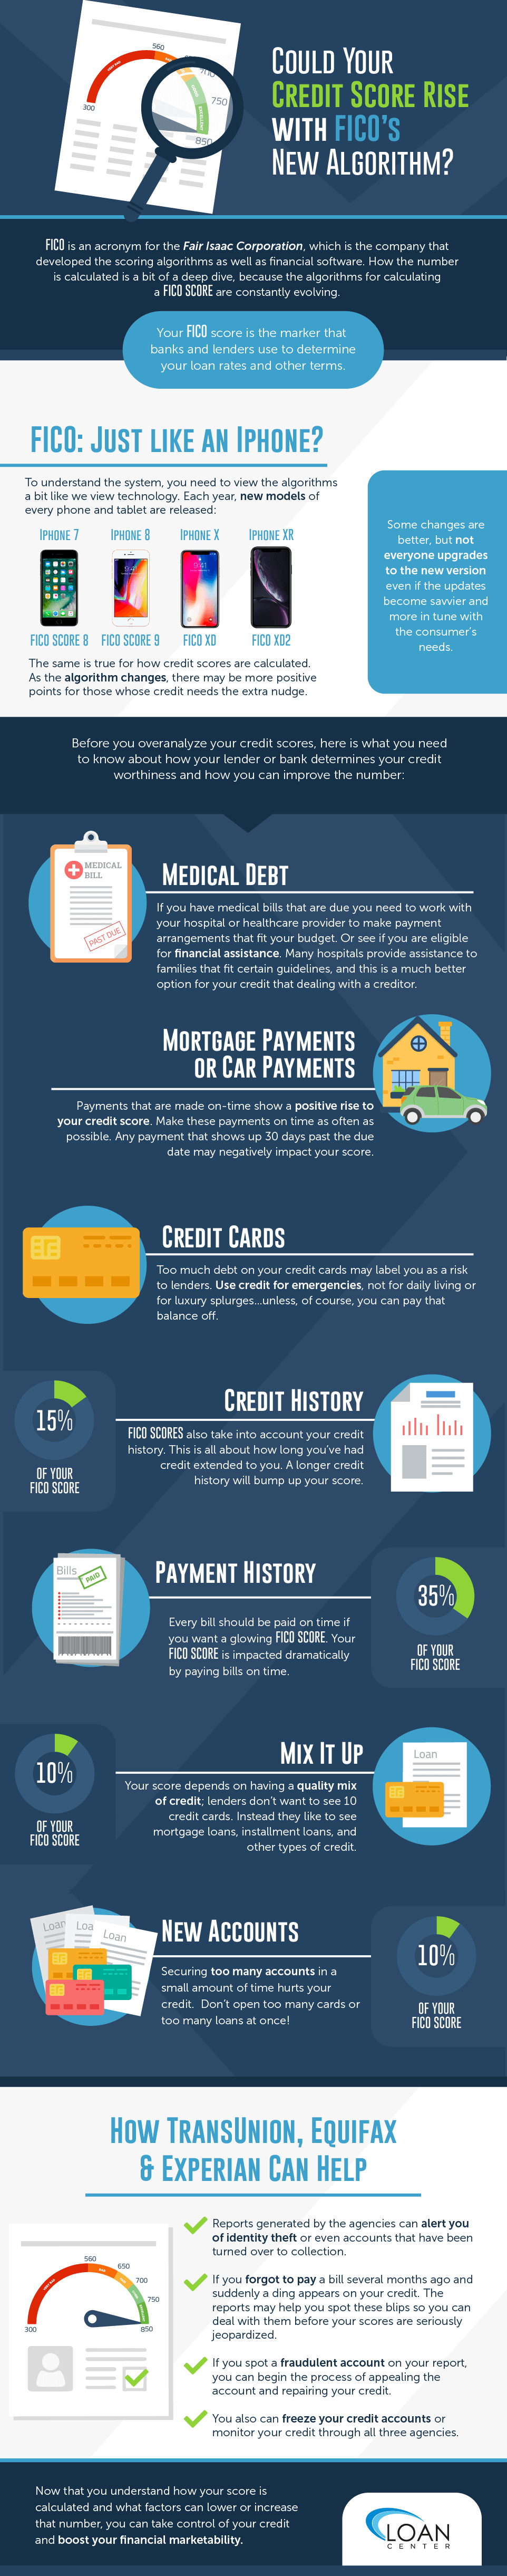 Could your credit score rise with Fico's new algorithm infographic